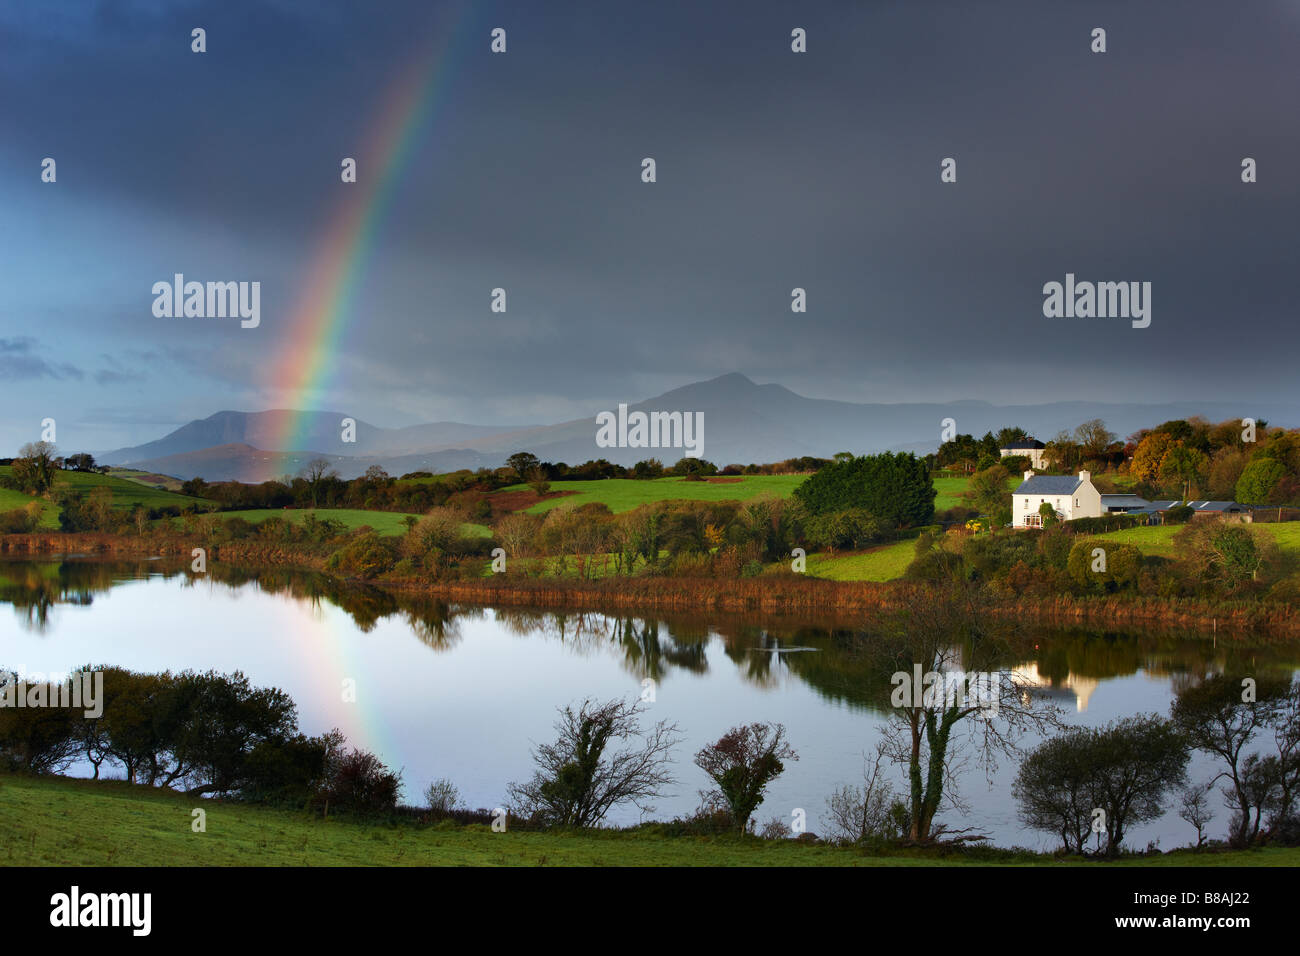 dawn over Bantry Bay, with a rainbow nr Bantry, County Cork, Ireland - Stock Image